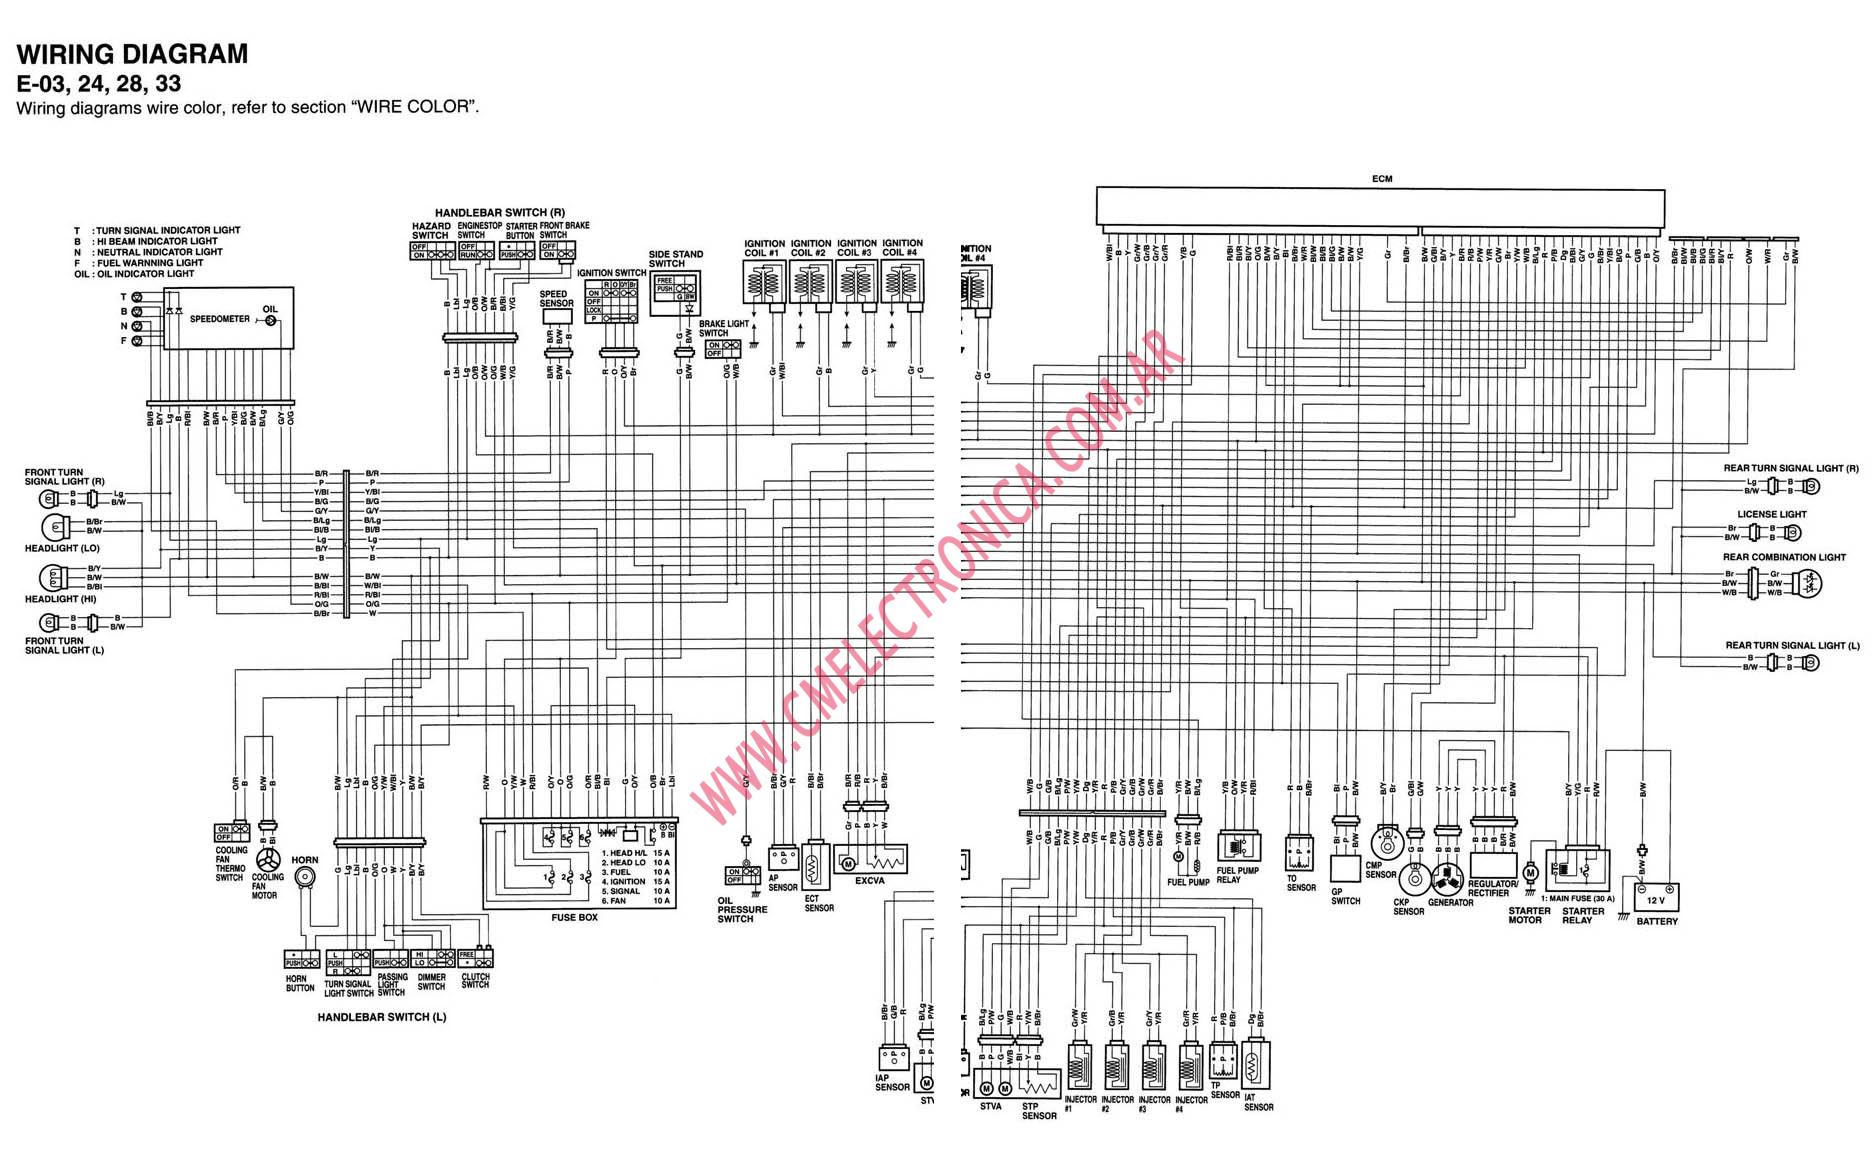 07 gsxr 750 wiring diagram 07 free engine image for user